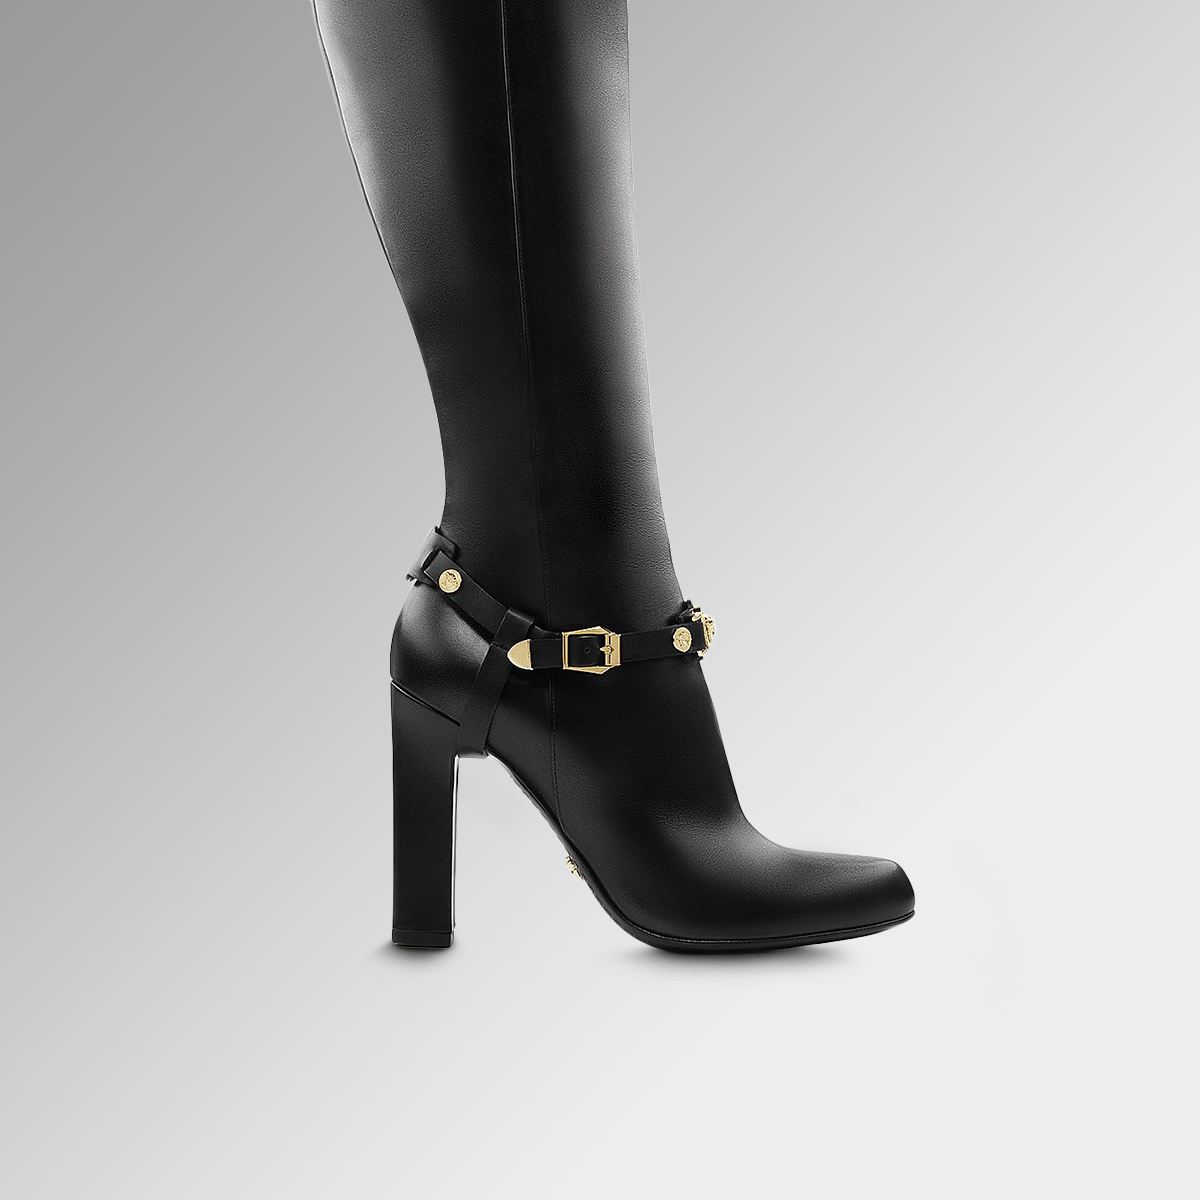 Elevate your outfit with these #VersaceSignature high boots. Find more accessories from the #Versace FW15 collection on versace.com